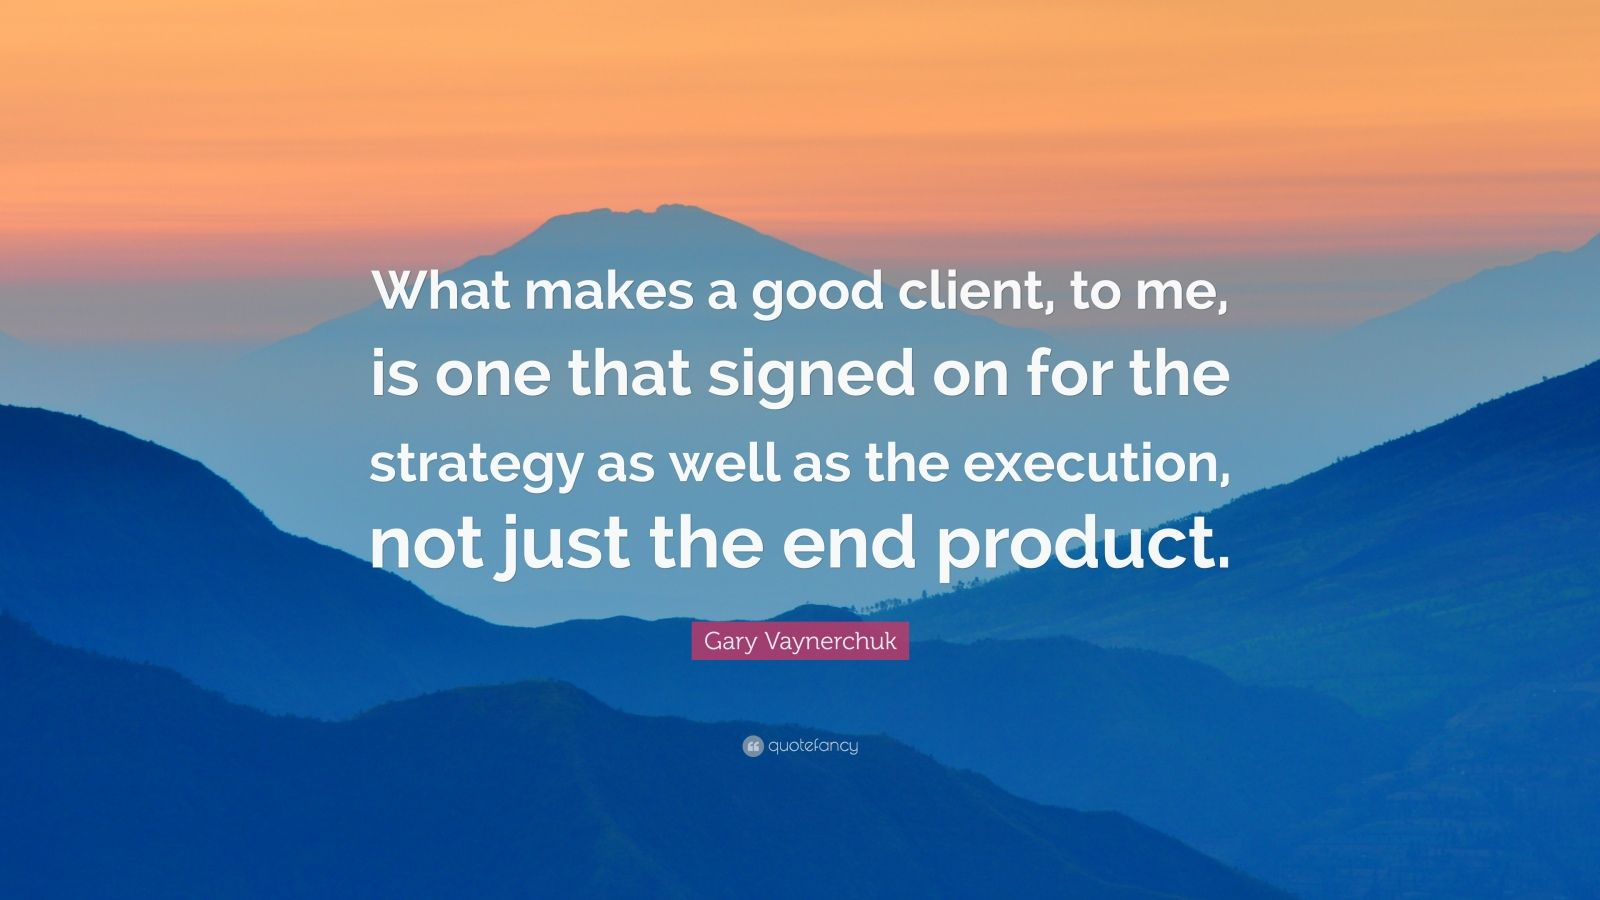 """Gary Vaynerchuk Quote: """"What makes a good client, to me, is one that signed on for the strategy as well as the execution, not just the end product."""""""